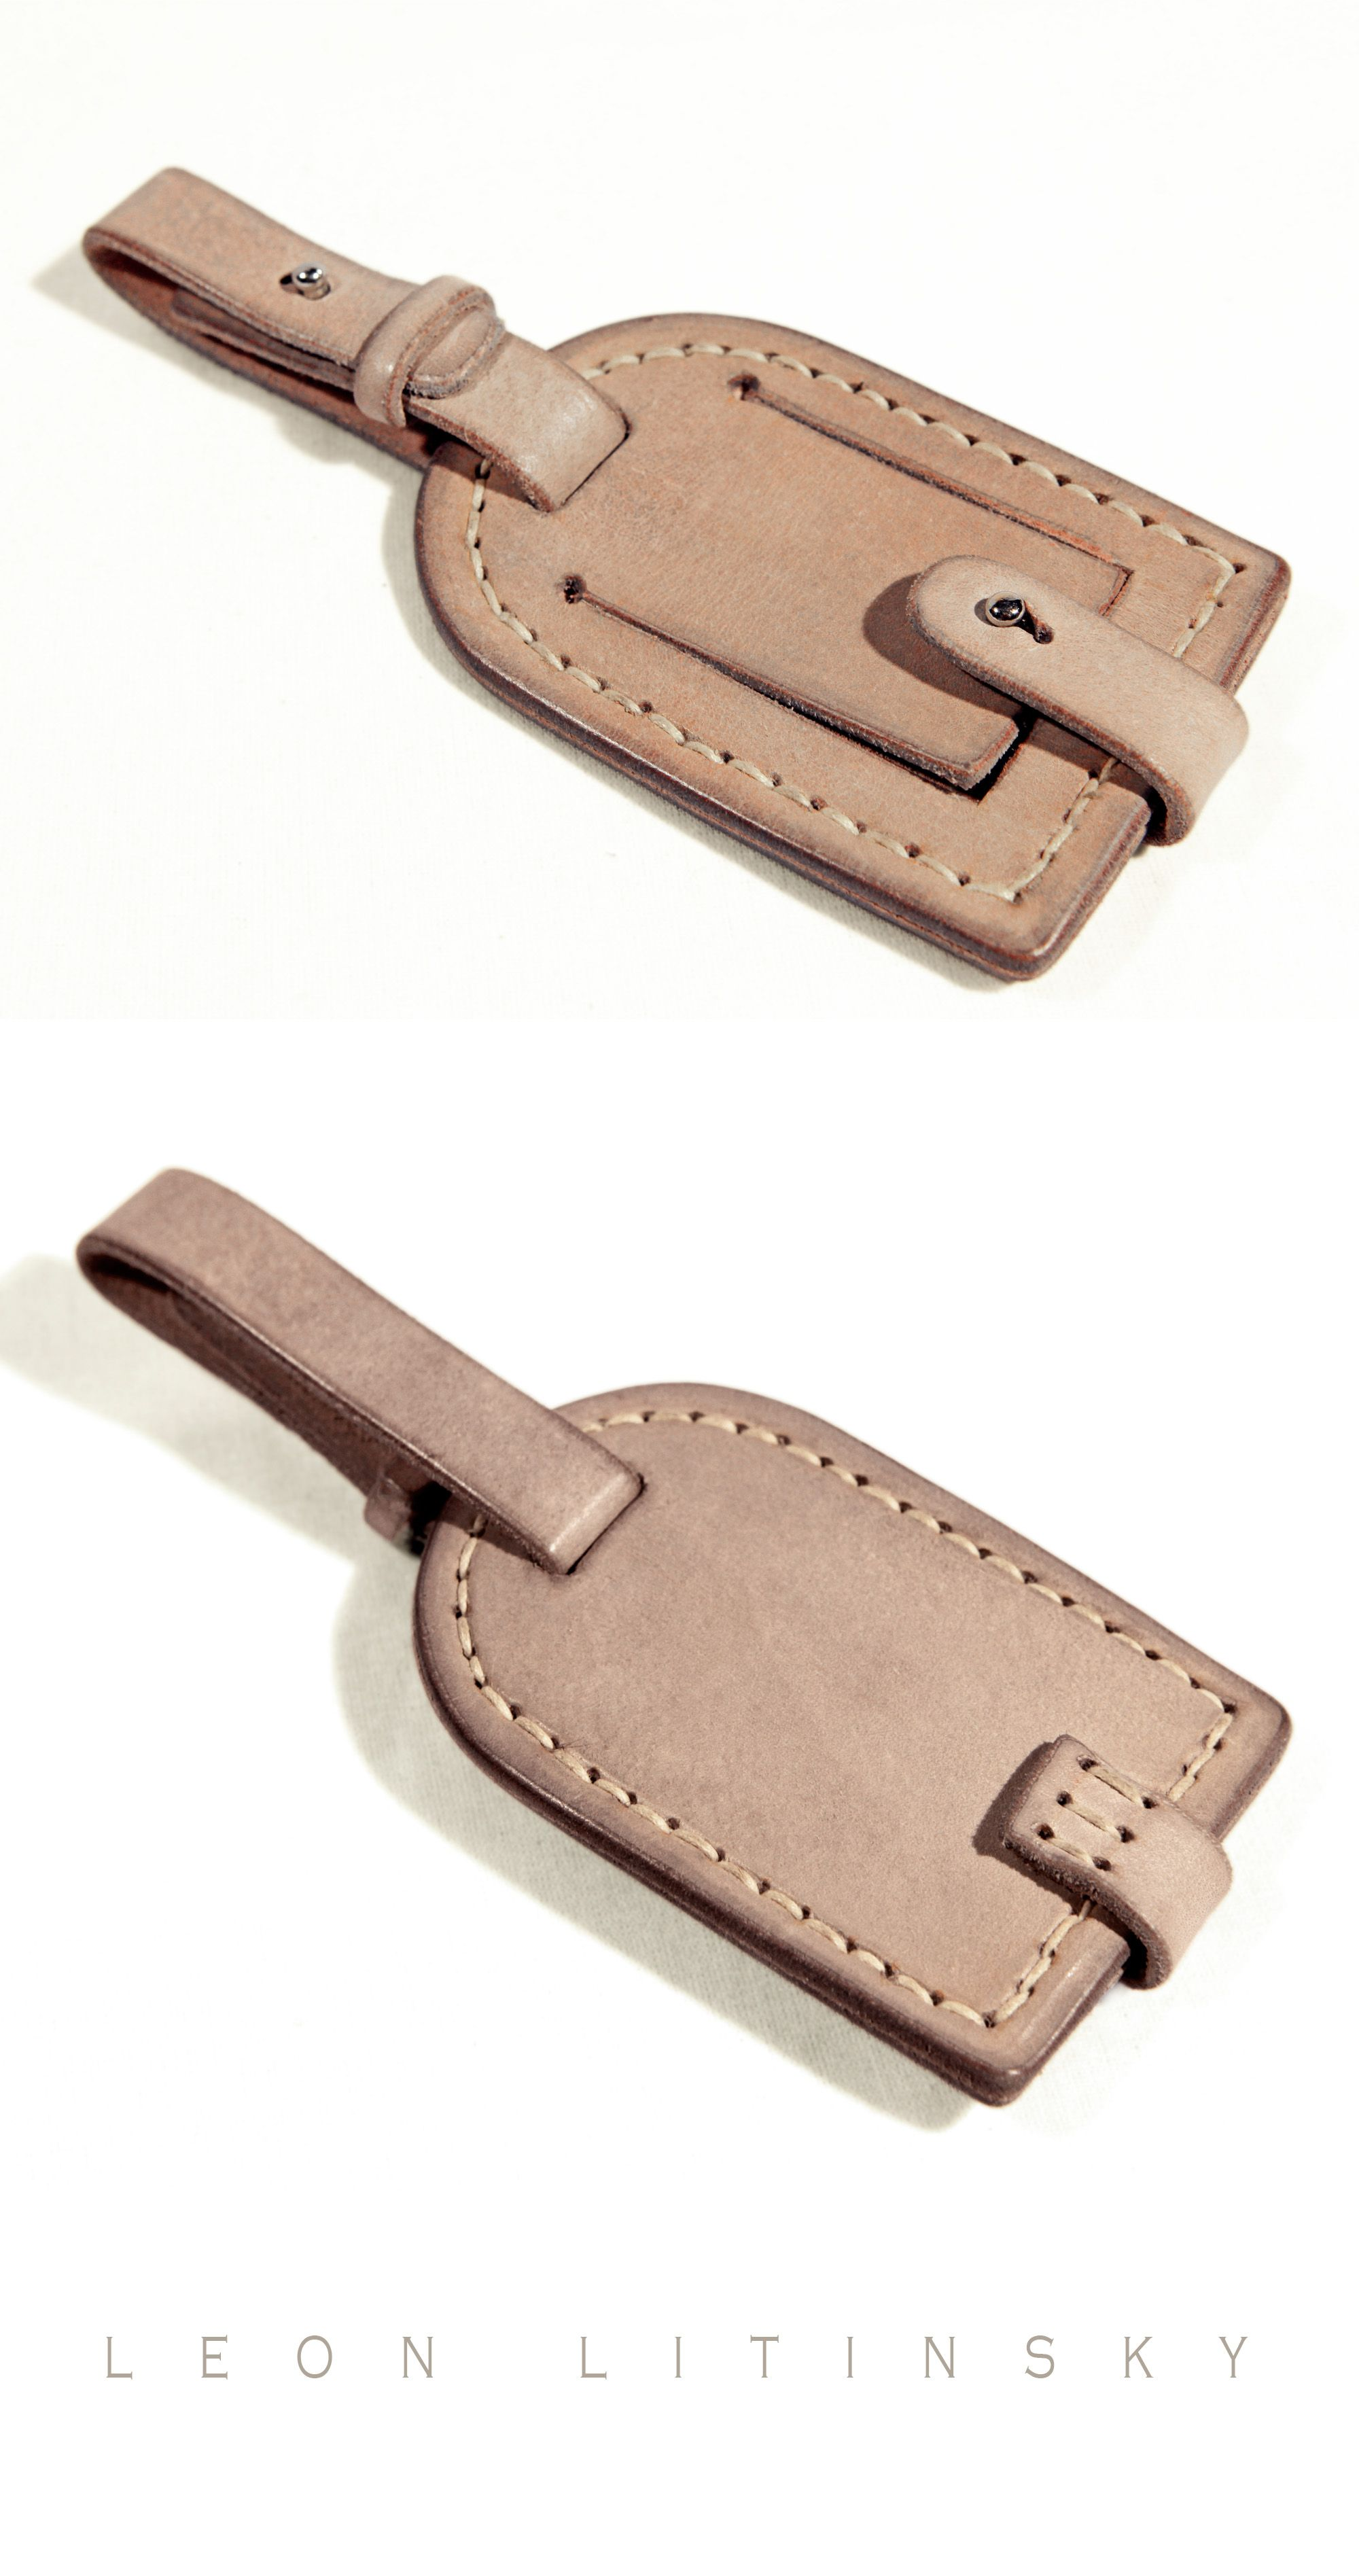 Leather Luggage Tag By Leon Litinsky   leather   Pinterest   Leather ...